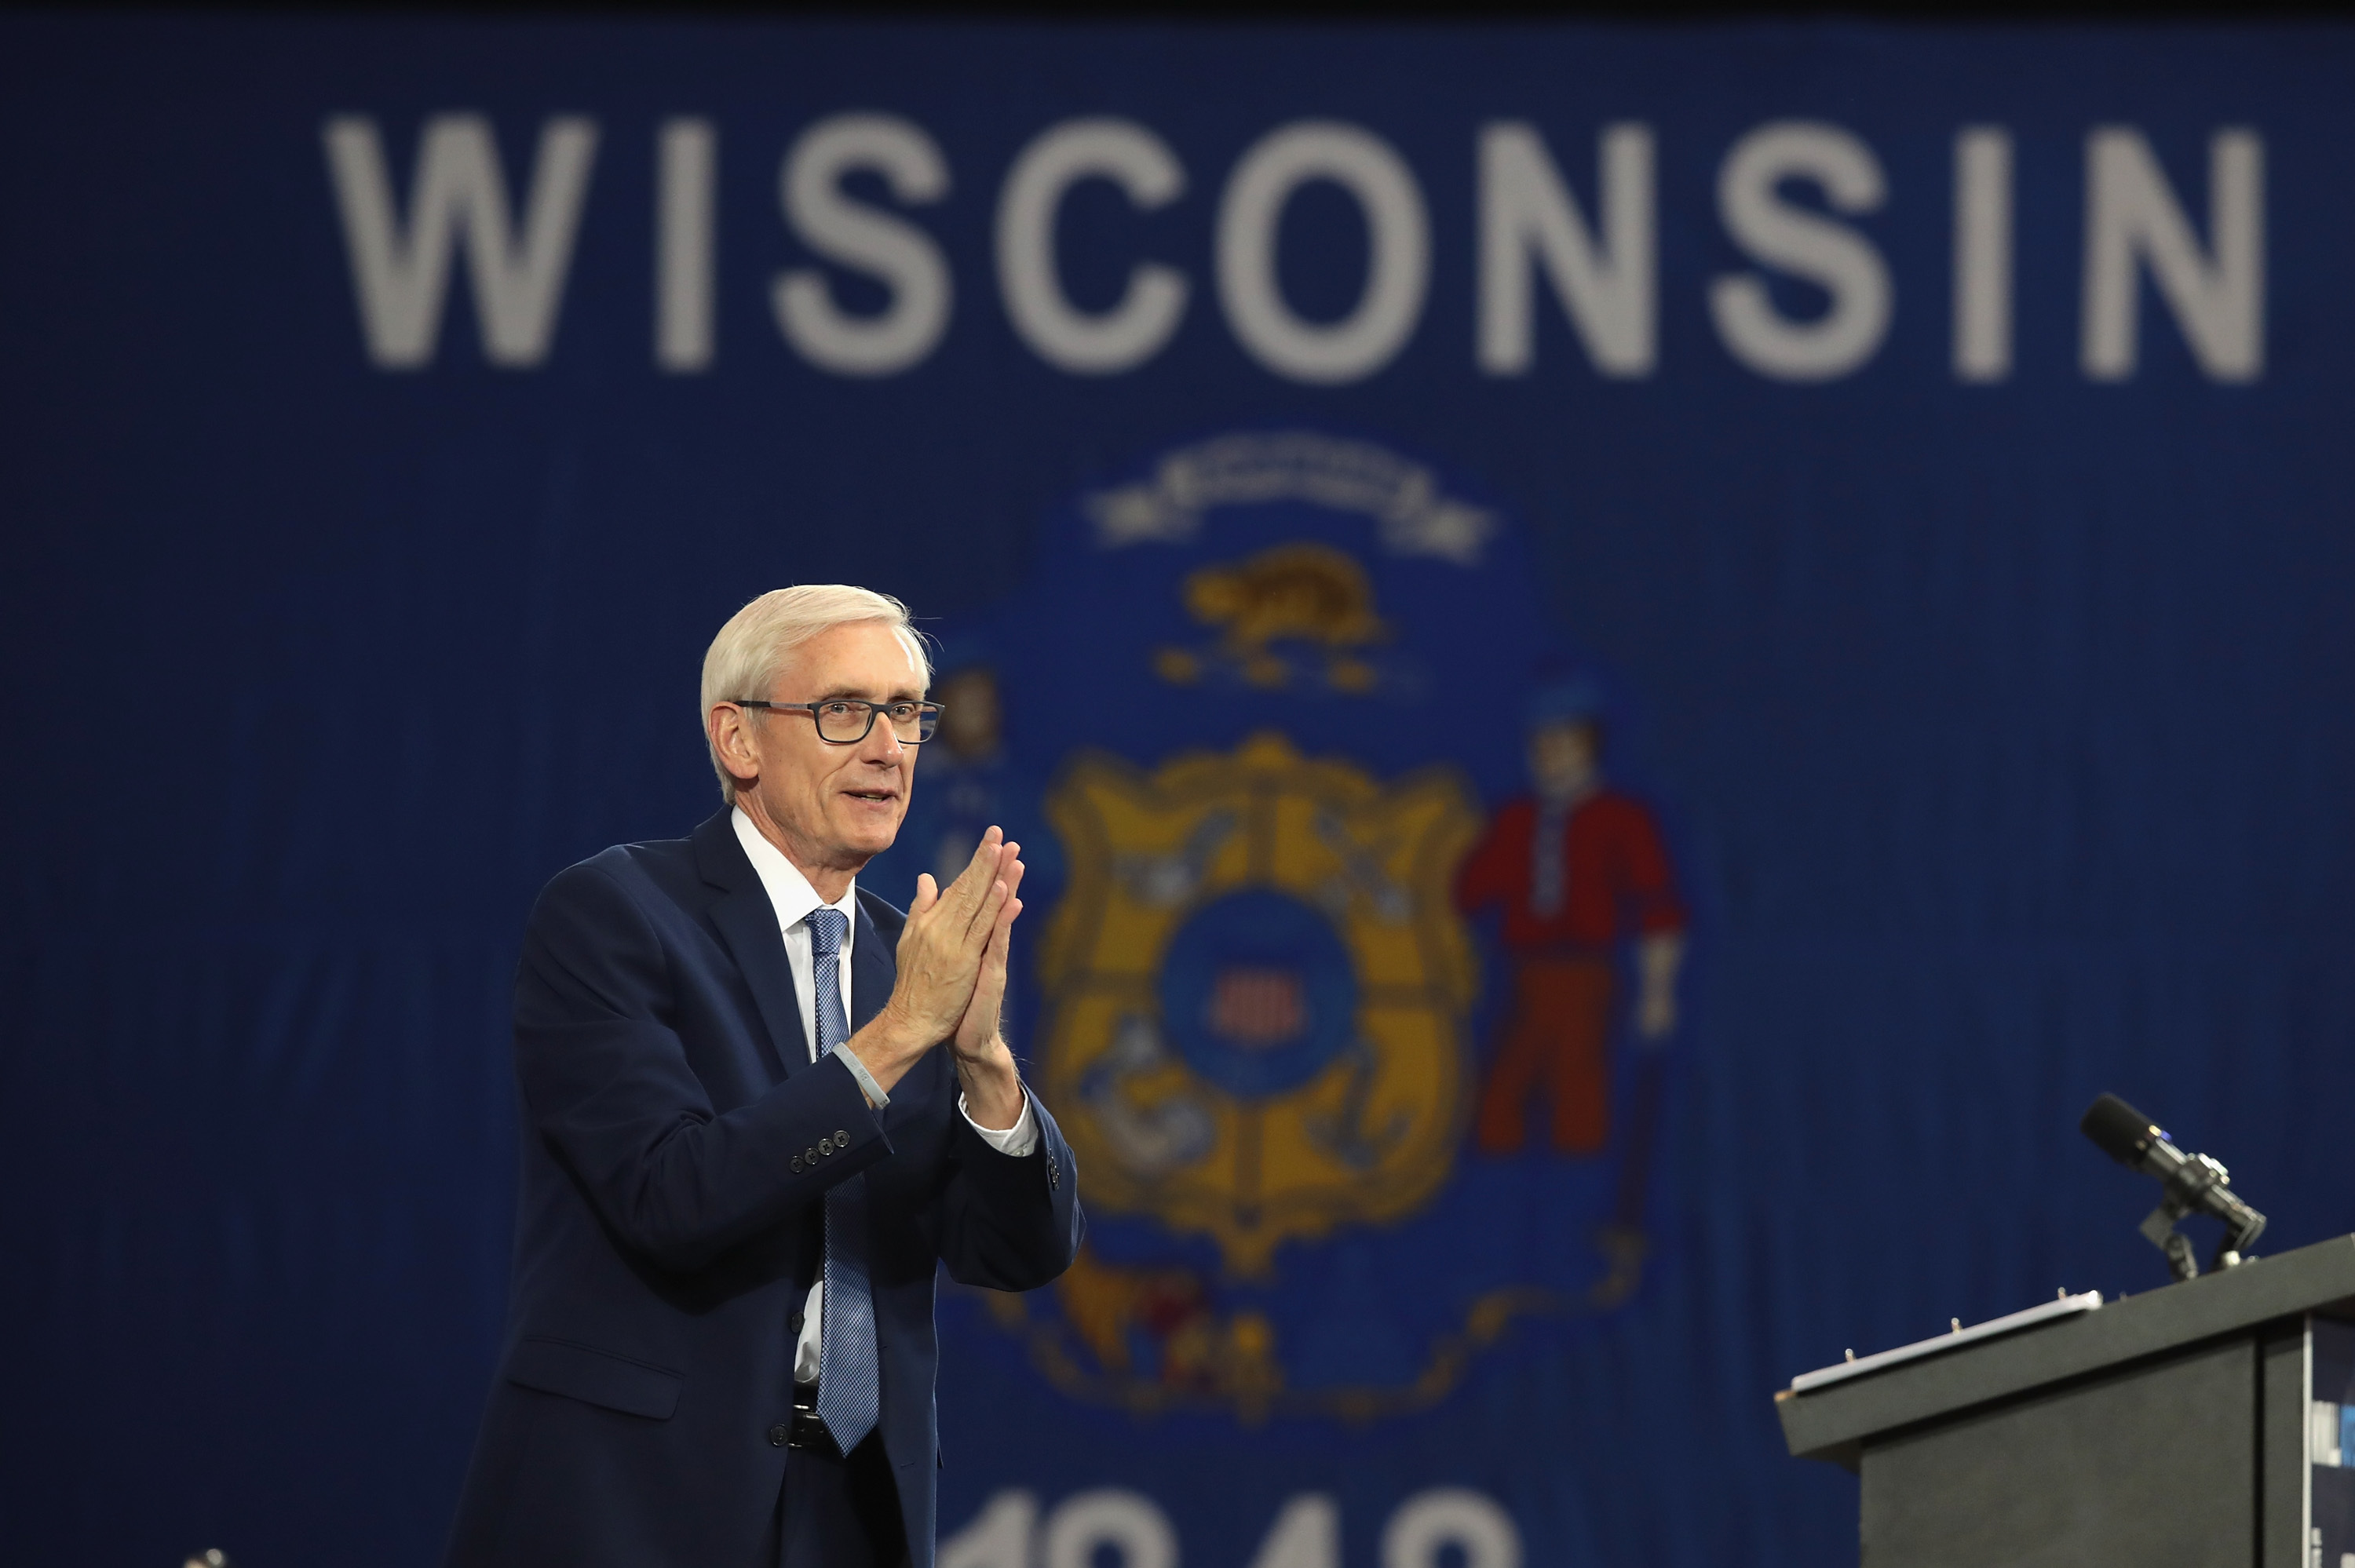 Tony Evers, Democratic candidate for governor of Wisconsin, speaks at a rally in Milwaukee. Evers defeated Republican Gov. Scott Walker.